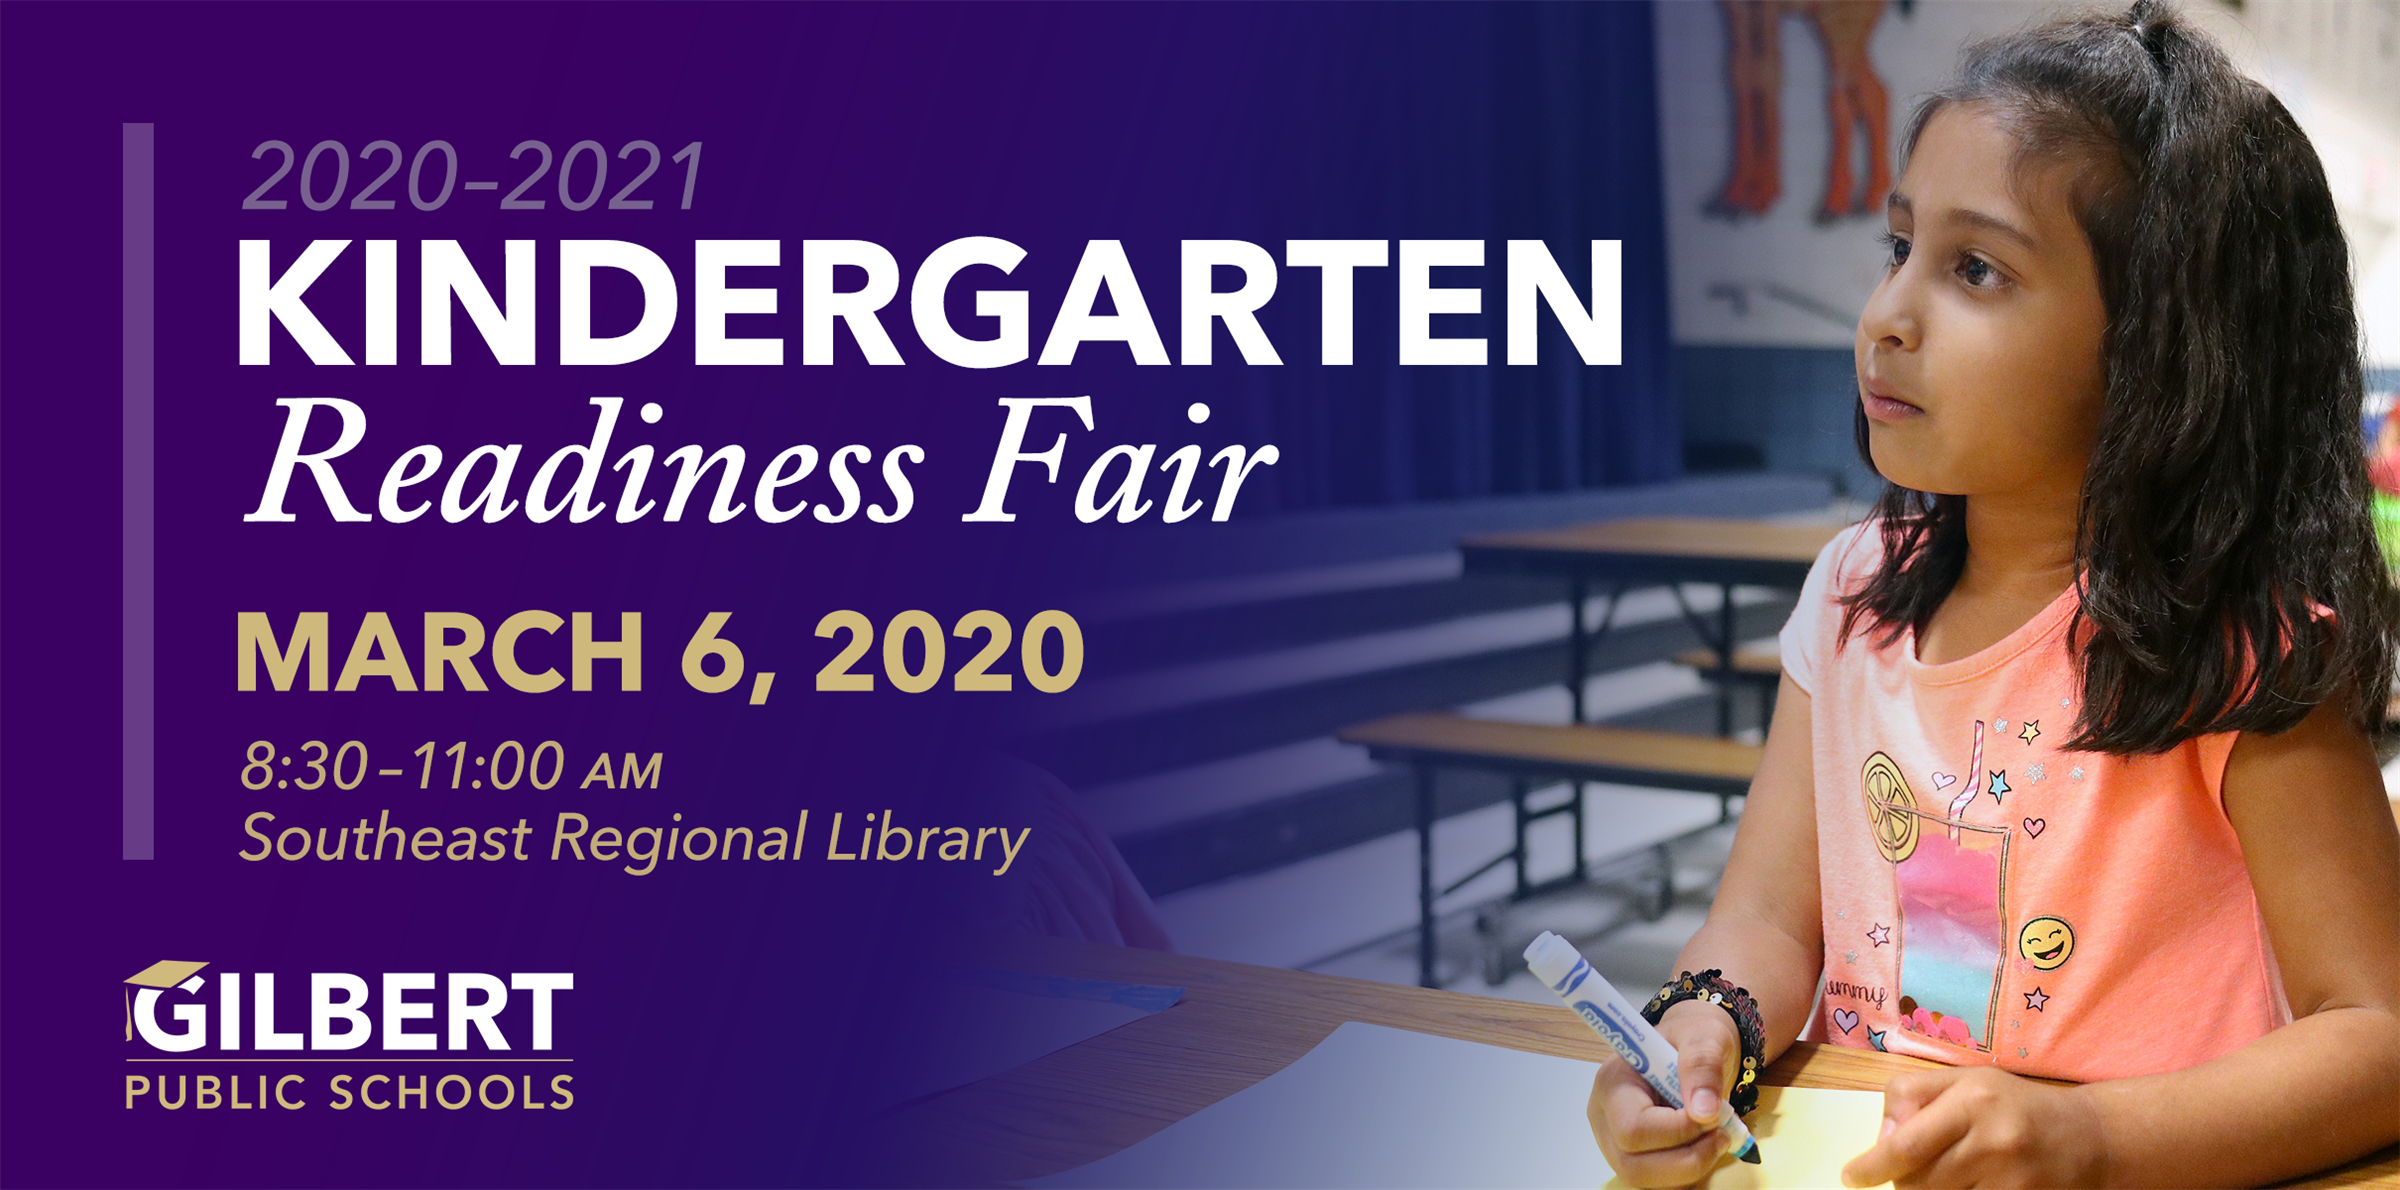 Kindergarten Readiness Fair | March 6, 2020 8:30–11:00 a.m. | Southeast Regional Library (775 N Greenfield Rd, Gilbert, AZ 85